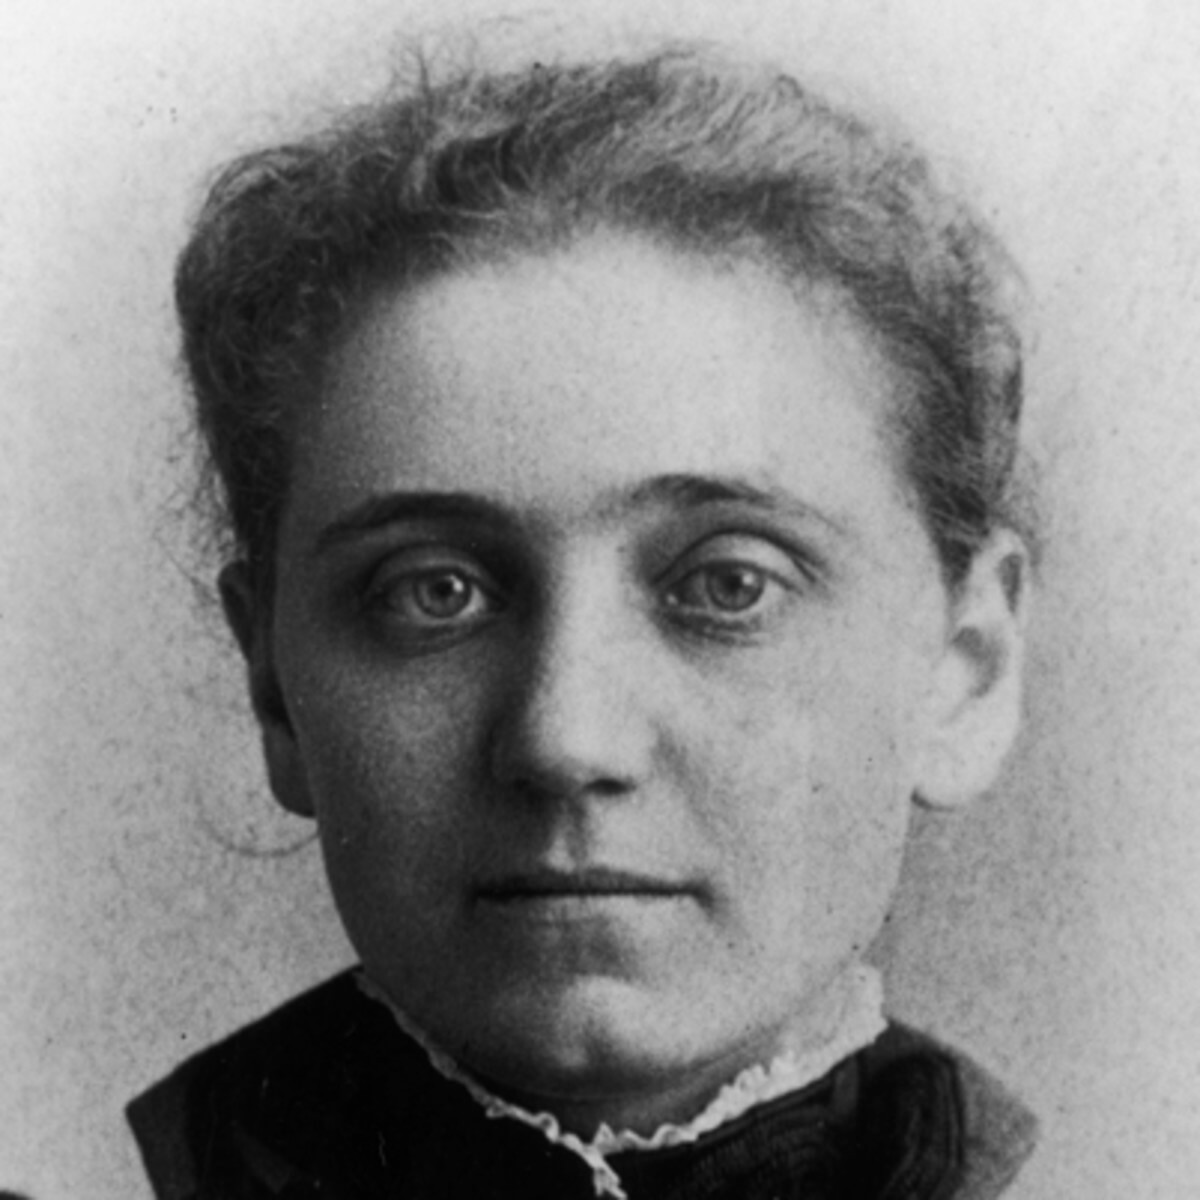 Jane Addams Biography, Age, Weight, Height, Friend, Like, Affairs, Favourite, Birthdate & Other